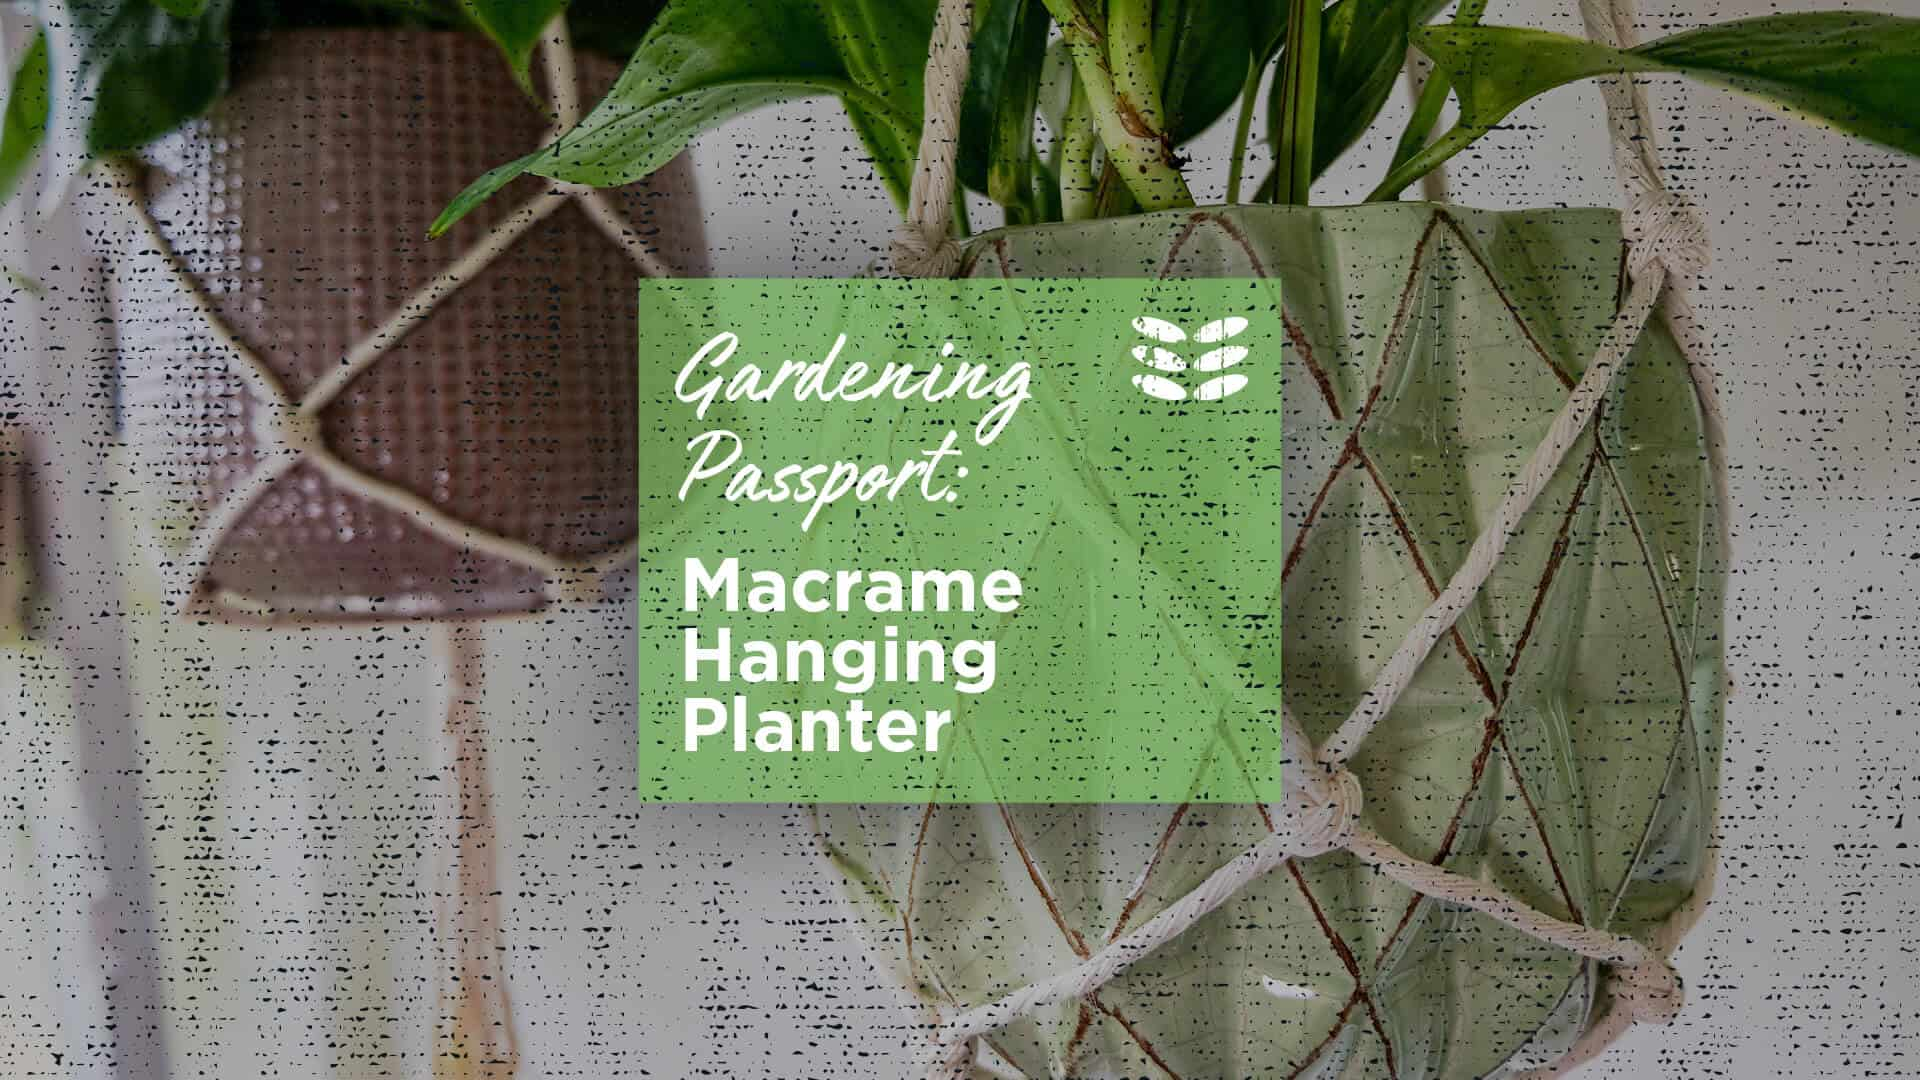 Macrame Hanging Planter Oct 24th